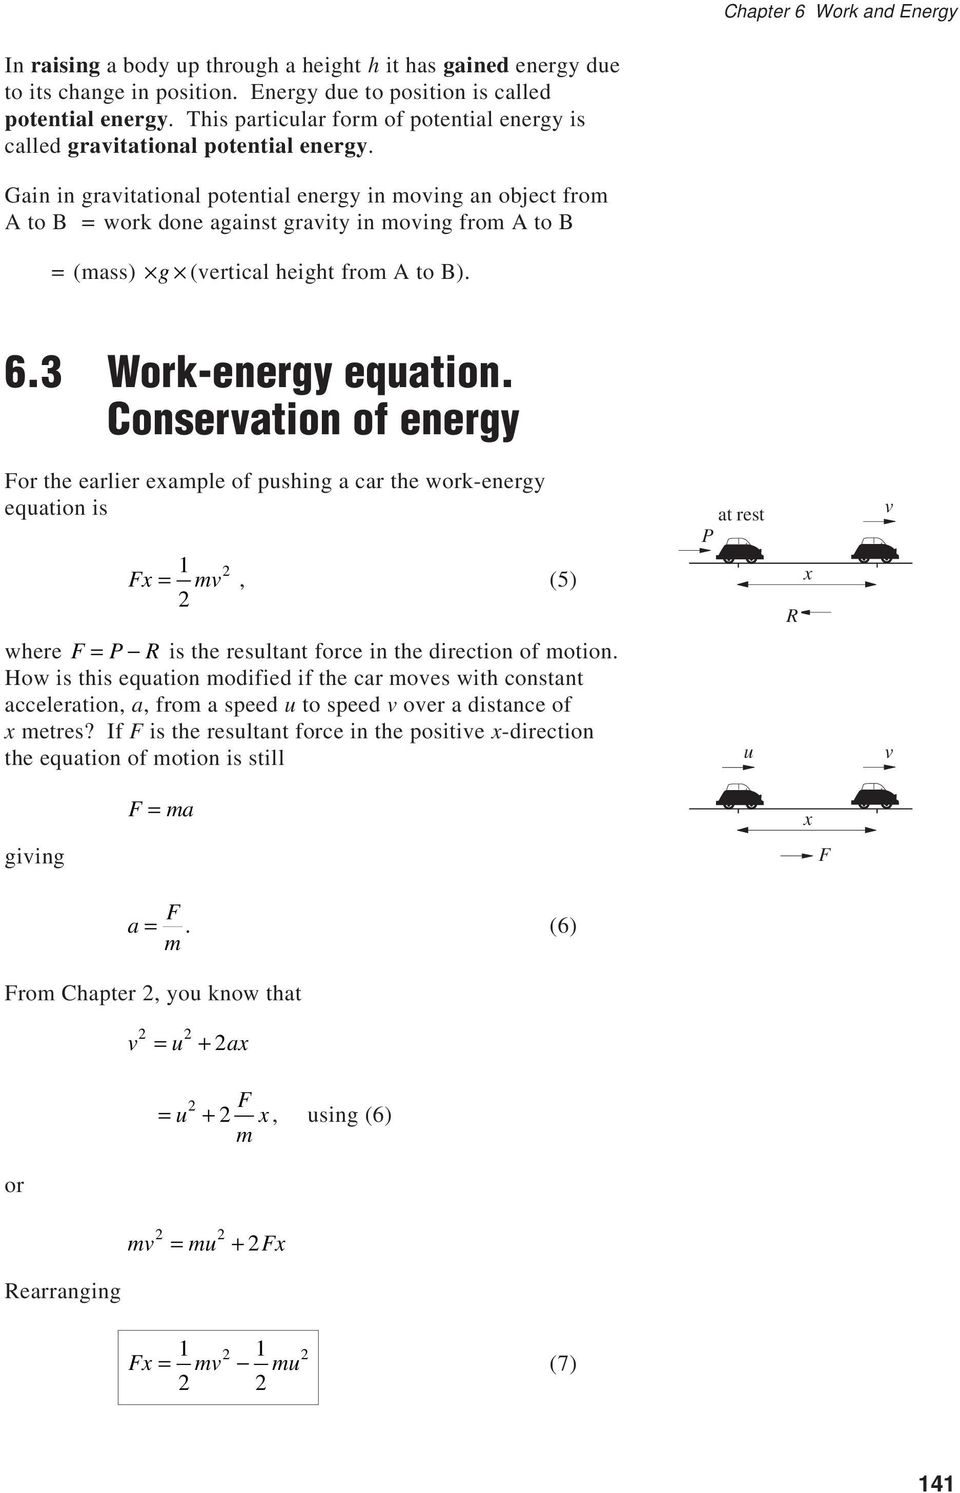 Gain in gravitational potential energy in moving an object from A to B = work done against gravity in moving from A to B = (mass) g (vertical height from A to B). 6.3 Work-energy equation.